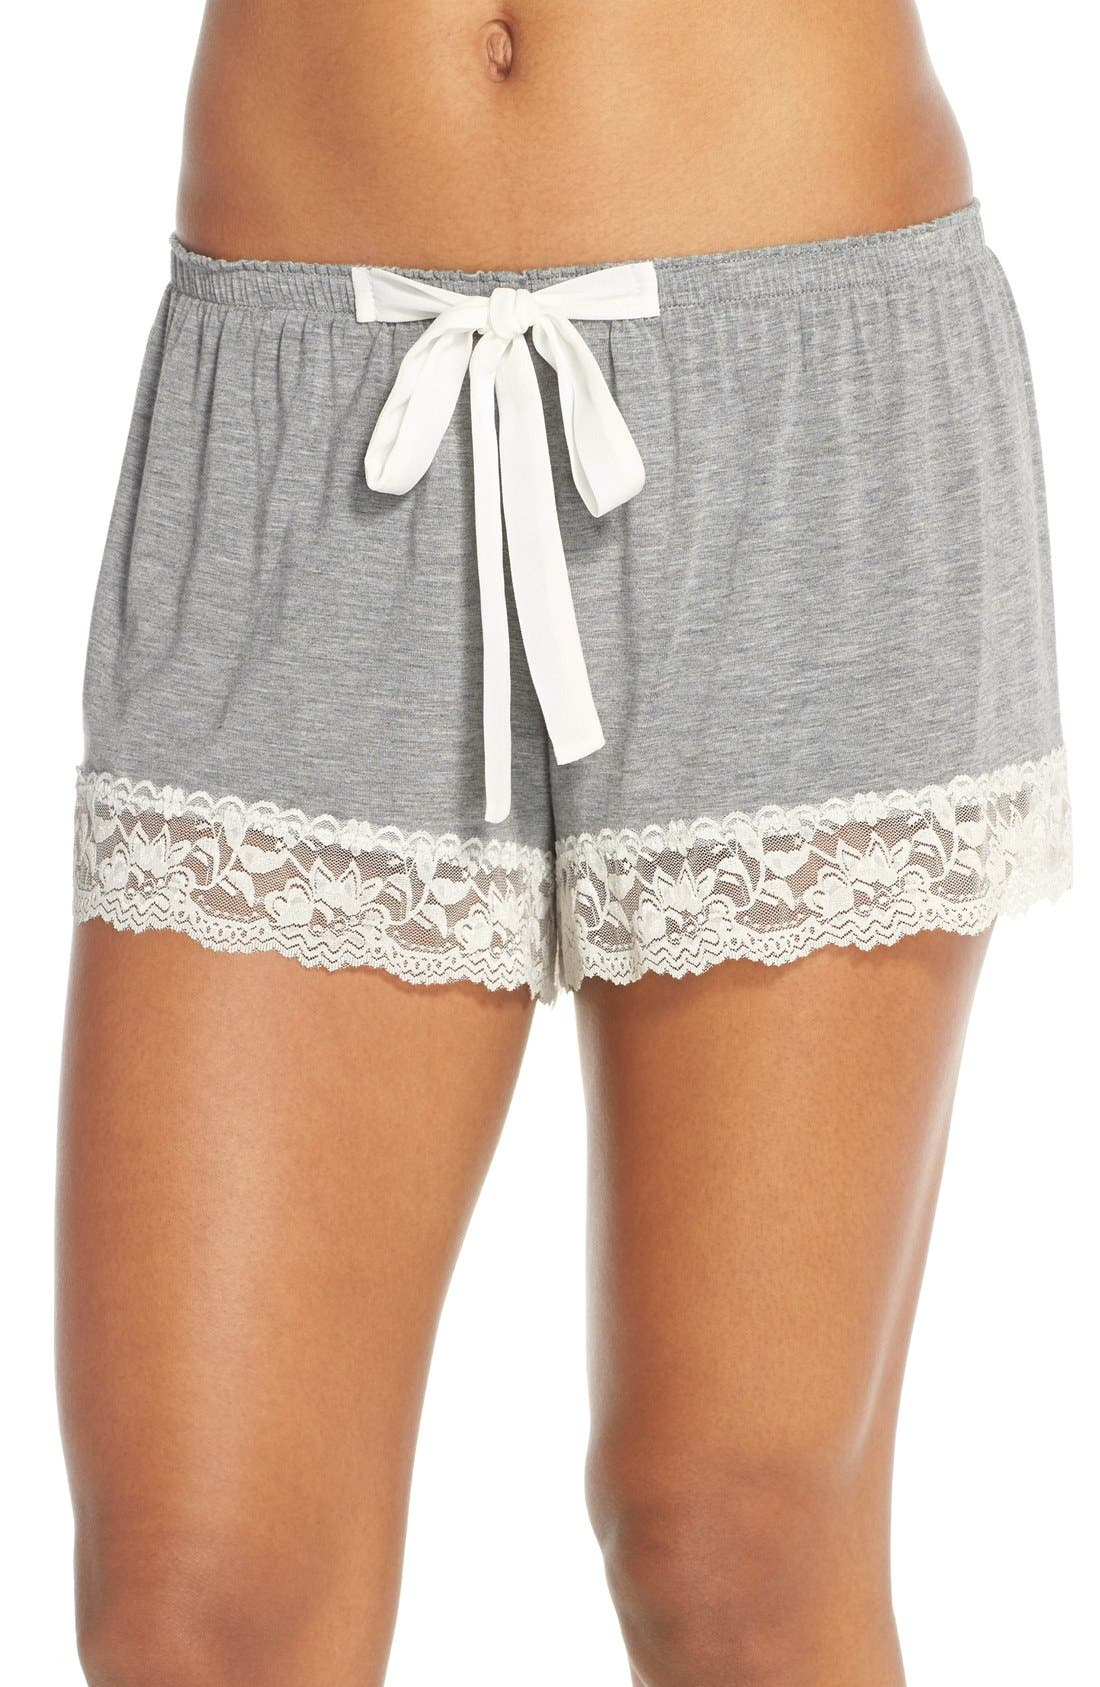 Flora Nikrooz Snuggle Lounge Shorts,                             Main thumbnail 1, color,                             HEATHER GREY